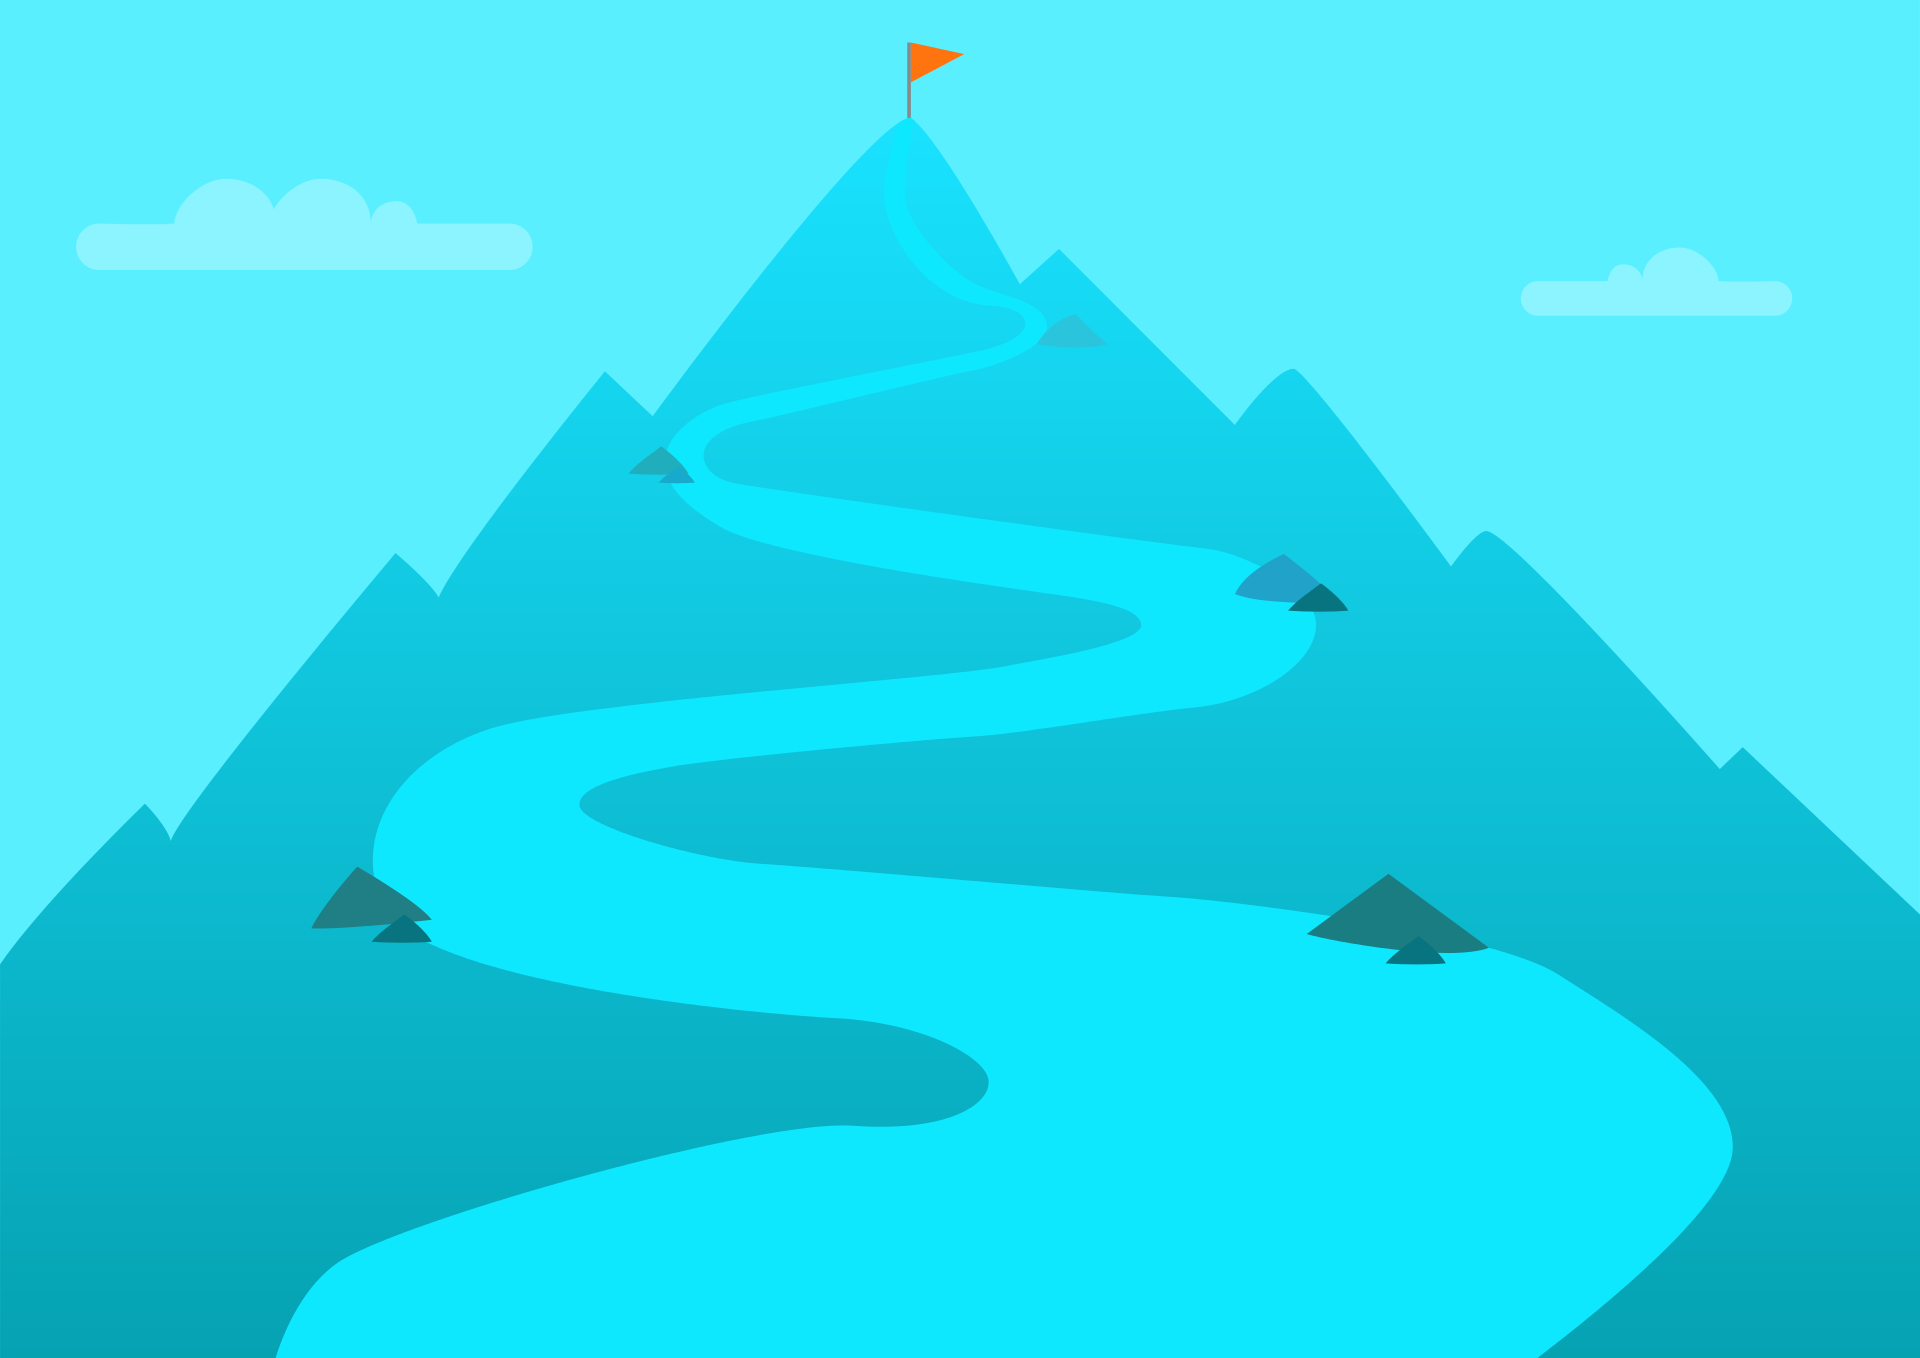 mountain illustration with a flag at the peak